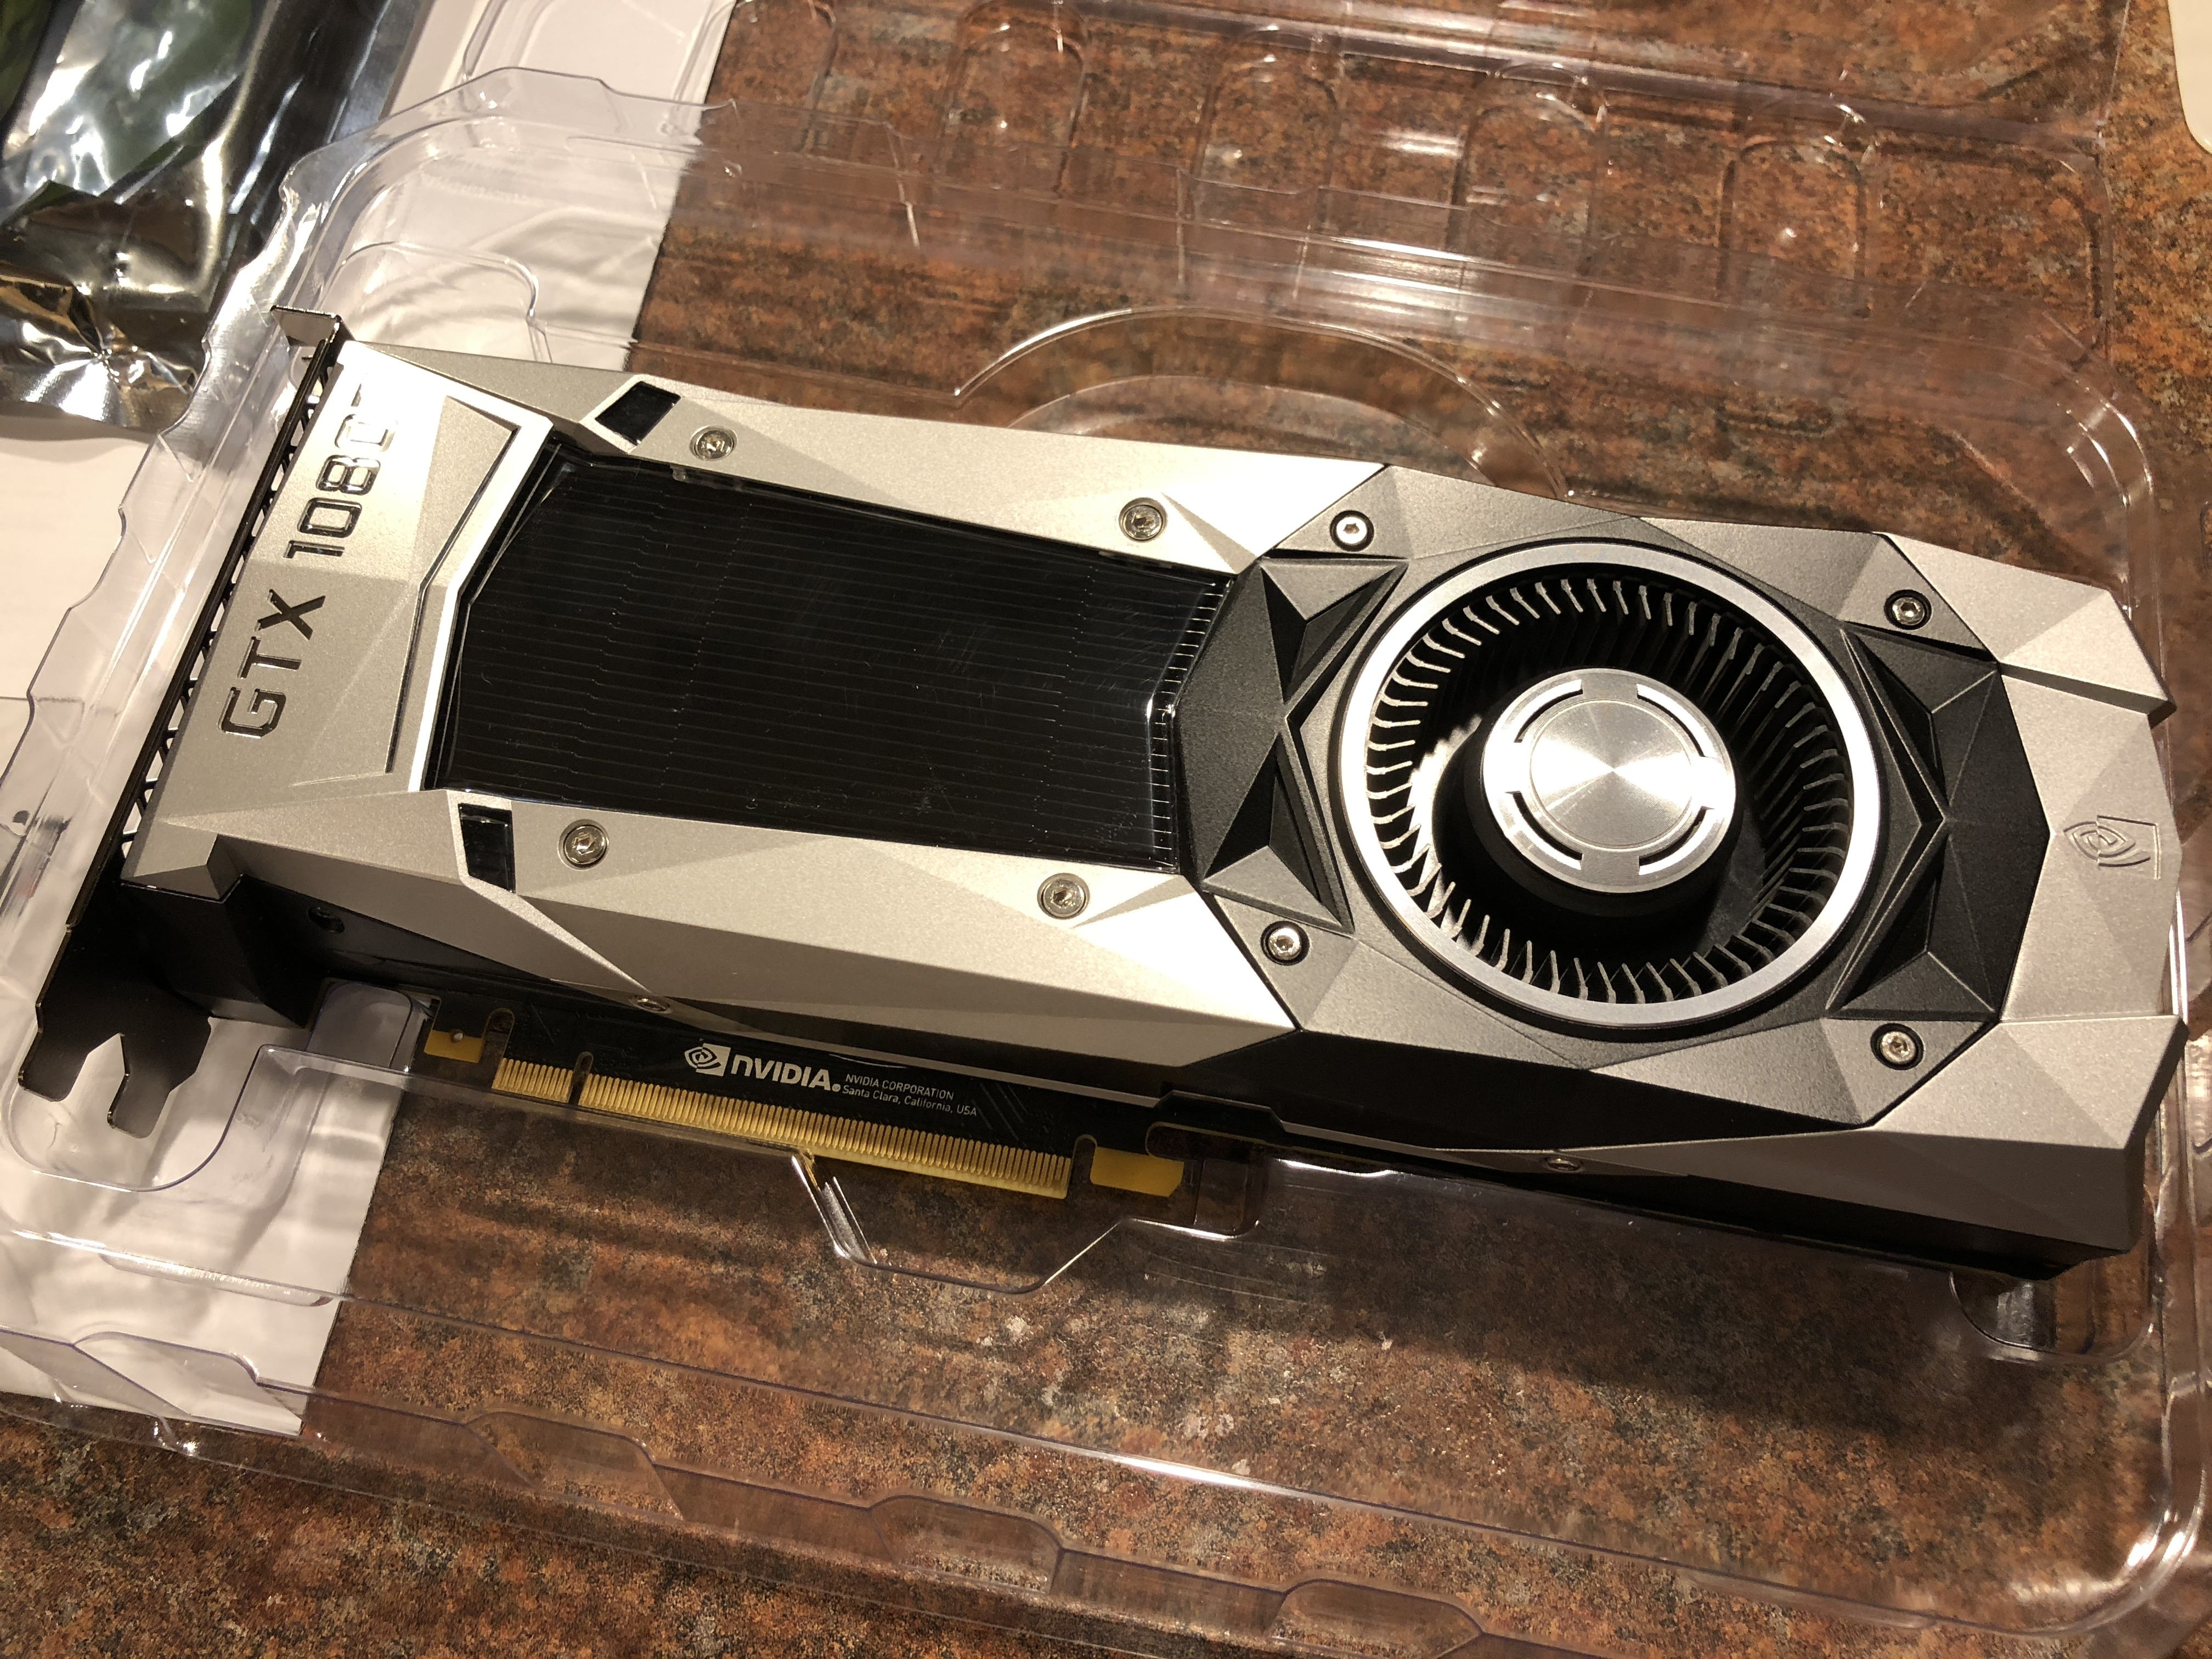 Used Water Tanks For Sale >> EVGA GTX 1080 Ti Founders Edition For Sale | HeatWare.com